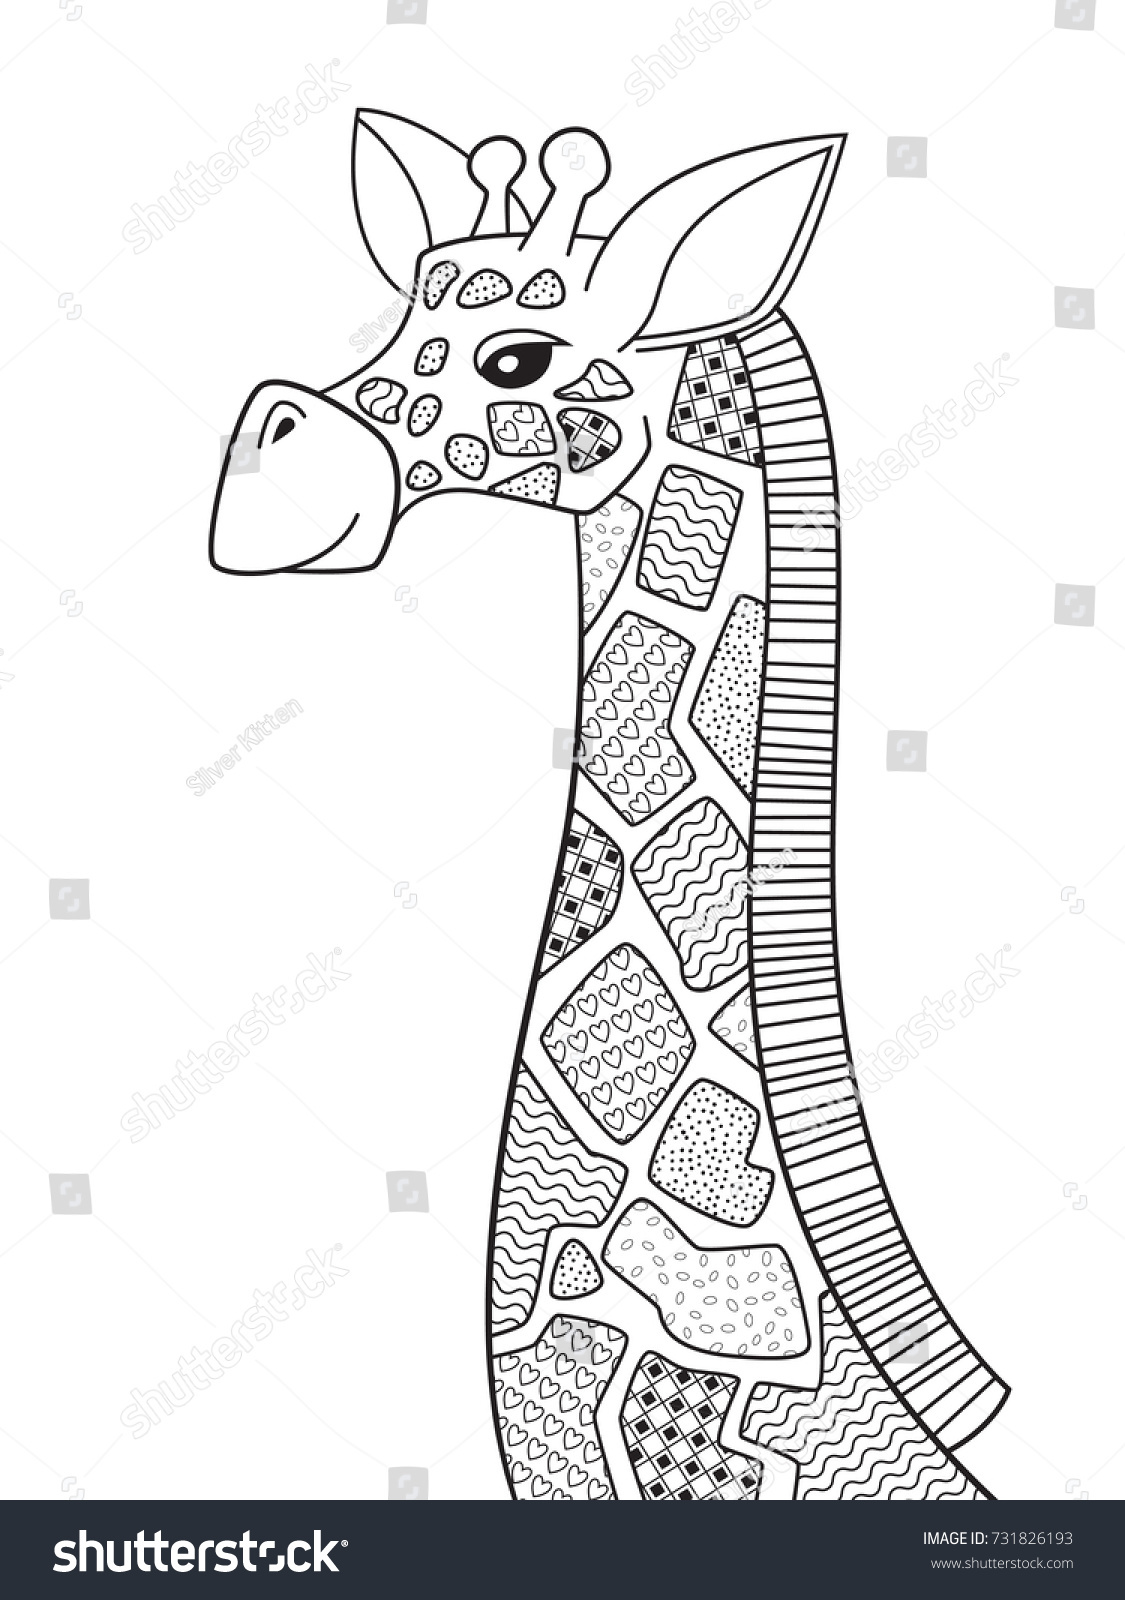 Coloring pages for adults giraffe - Outlined Doodle Anti Stress Coloring Page Cute Giraffe With Patterned Spot Coloring Book Page